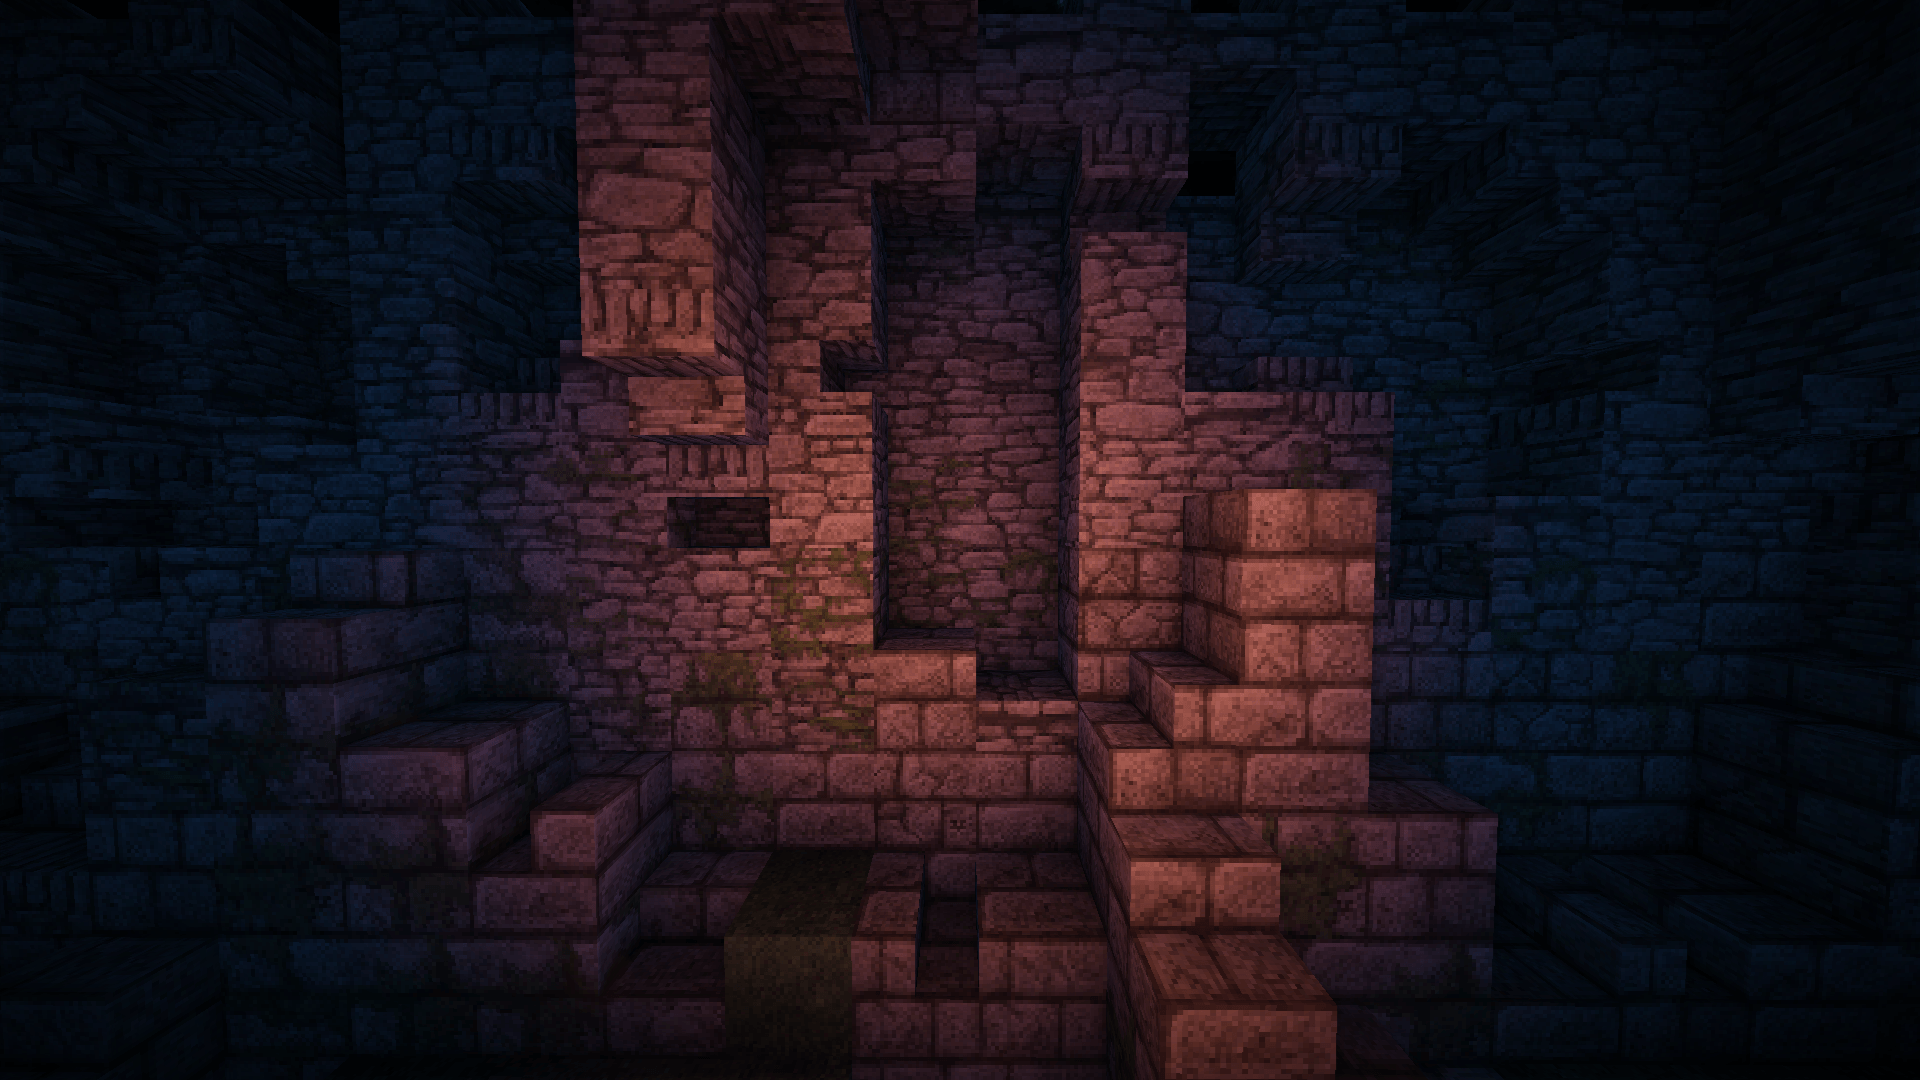 minecraft_wall_close_up_at_night_with_shaders__by_husseinhorack-d8gxep5